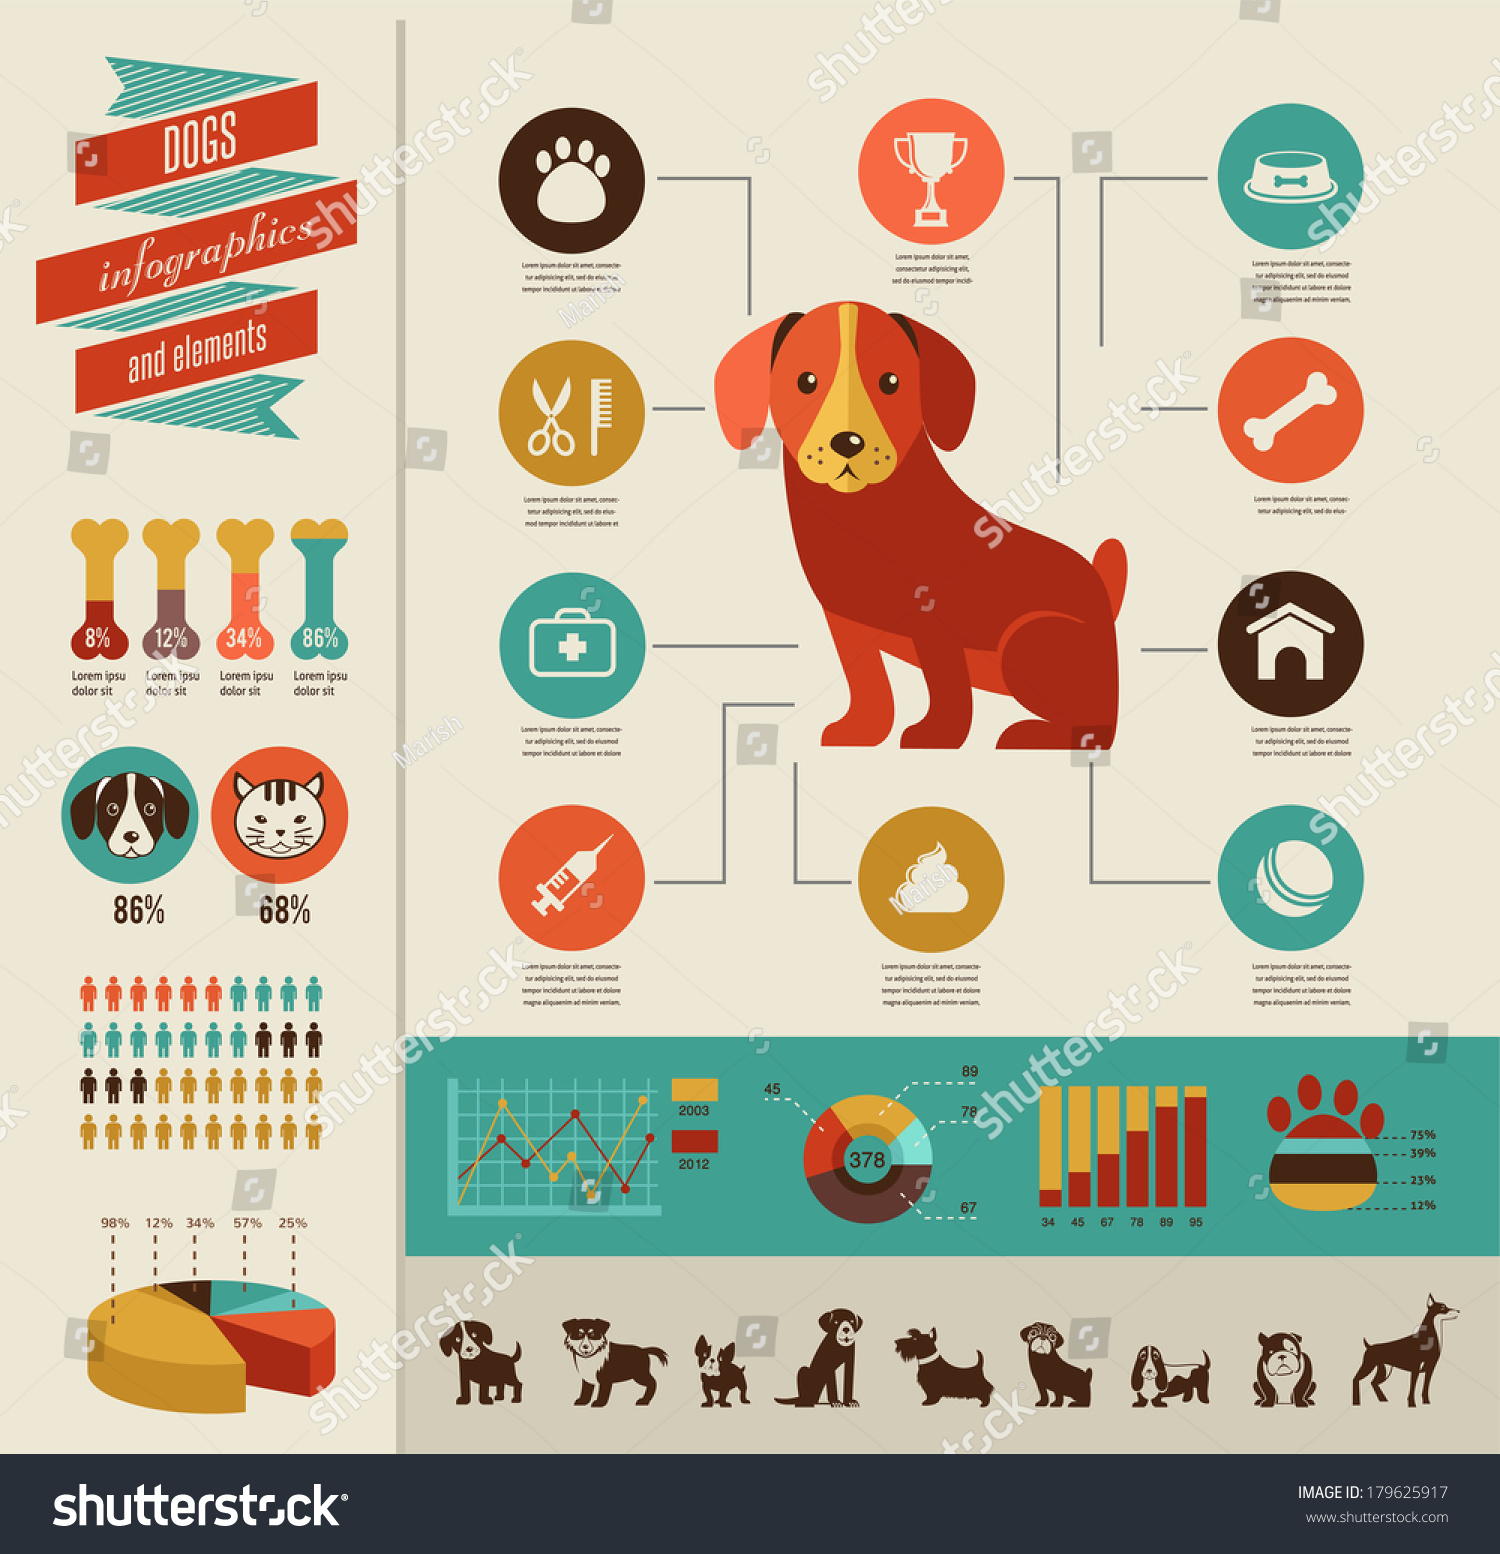 Dogs Infographics Vector Illustration Icon Set Stock ...